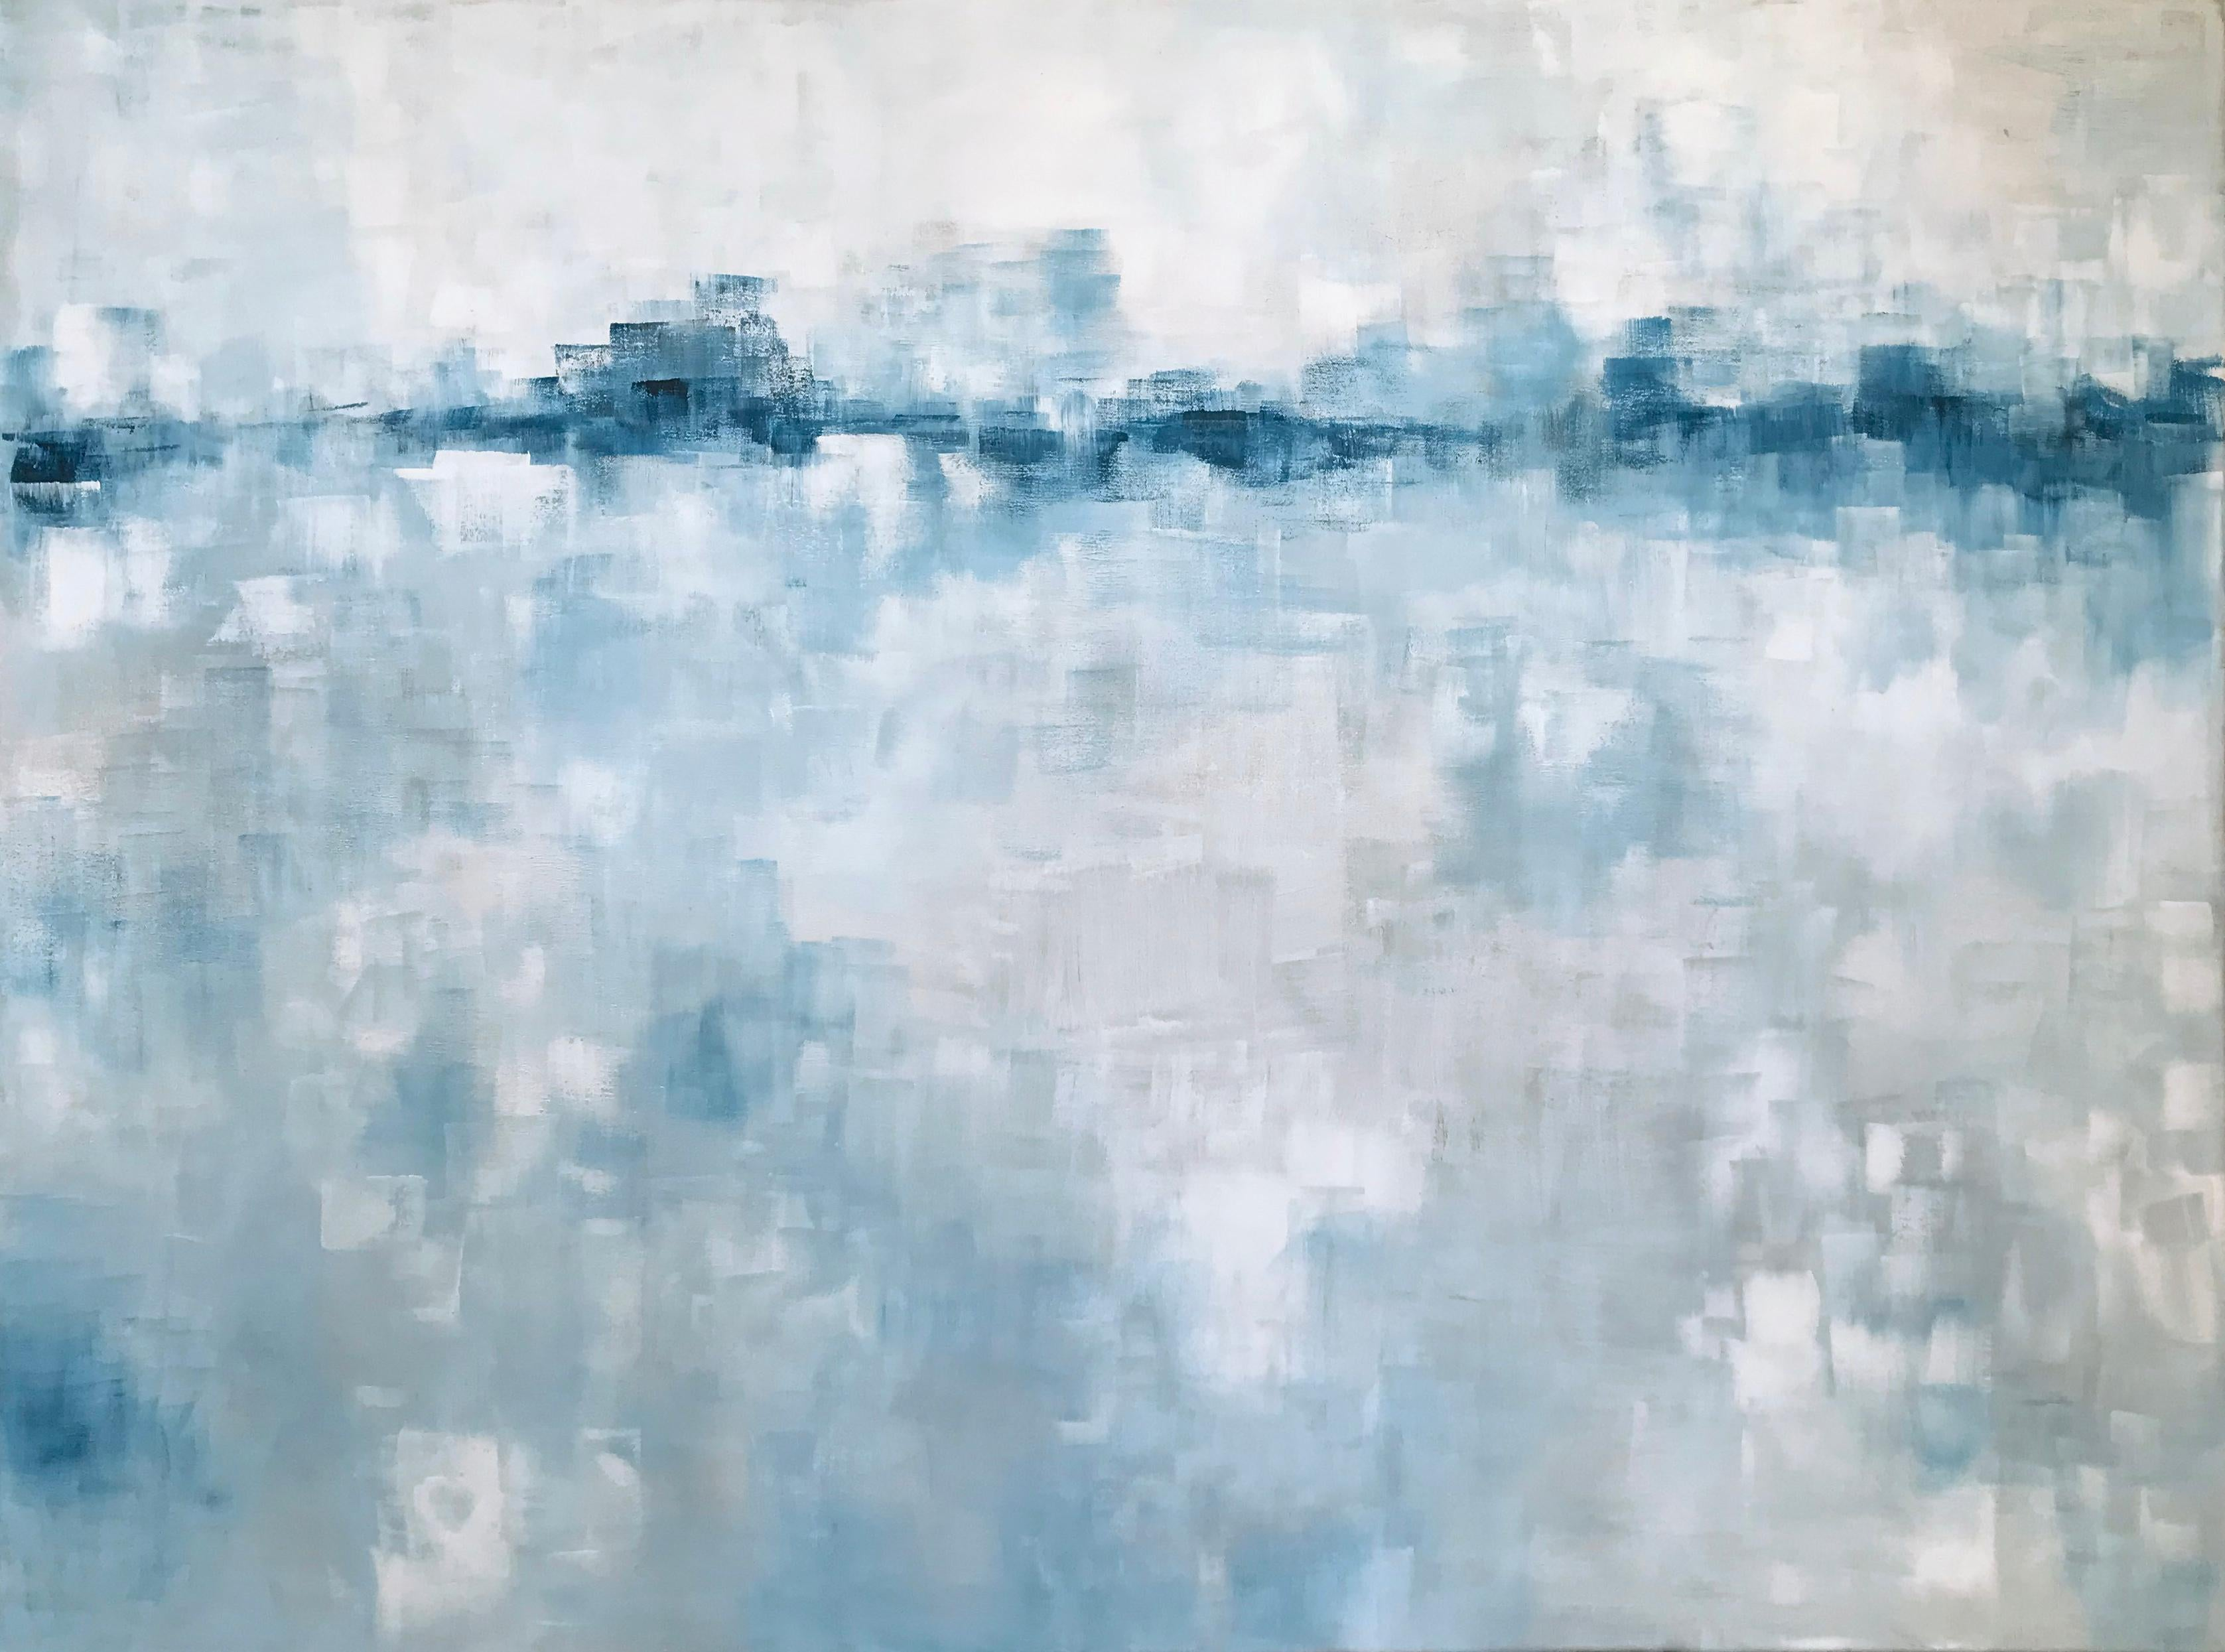 'Return to Yesterday', Minimalist Contemporary Abstract Acrylic Painting